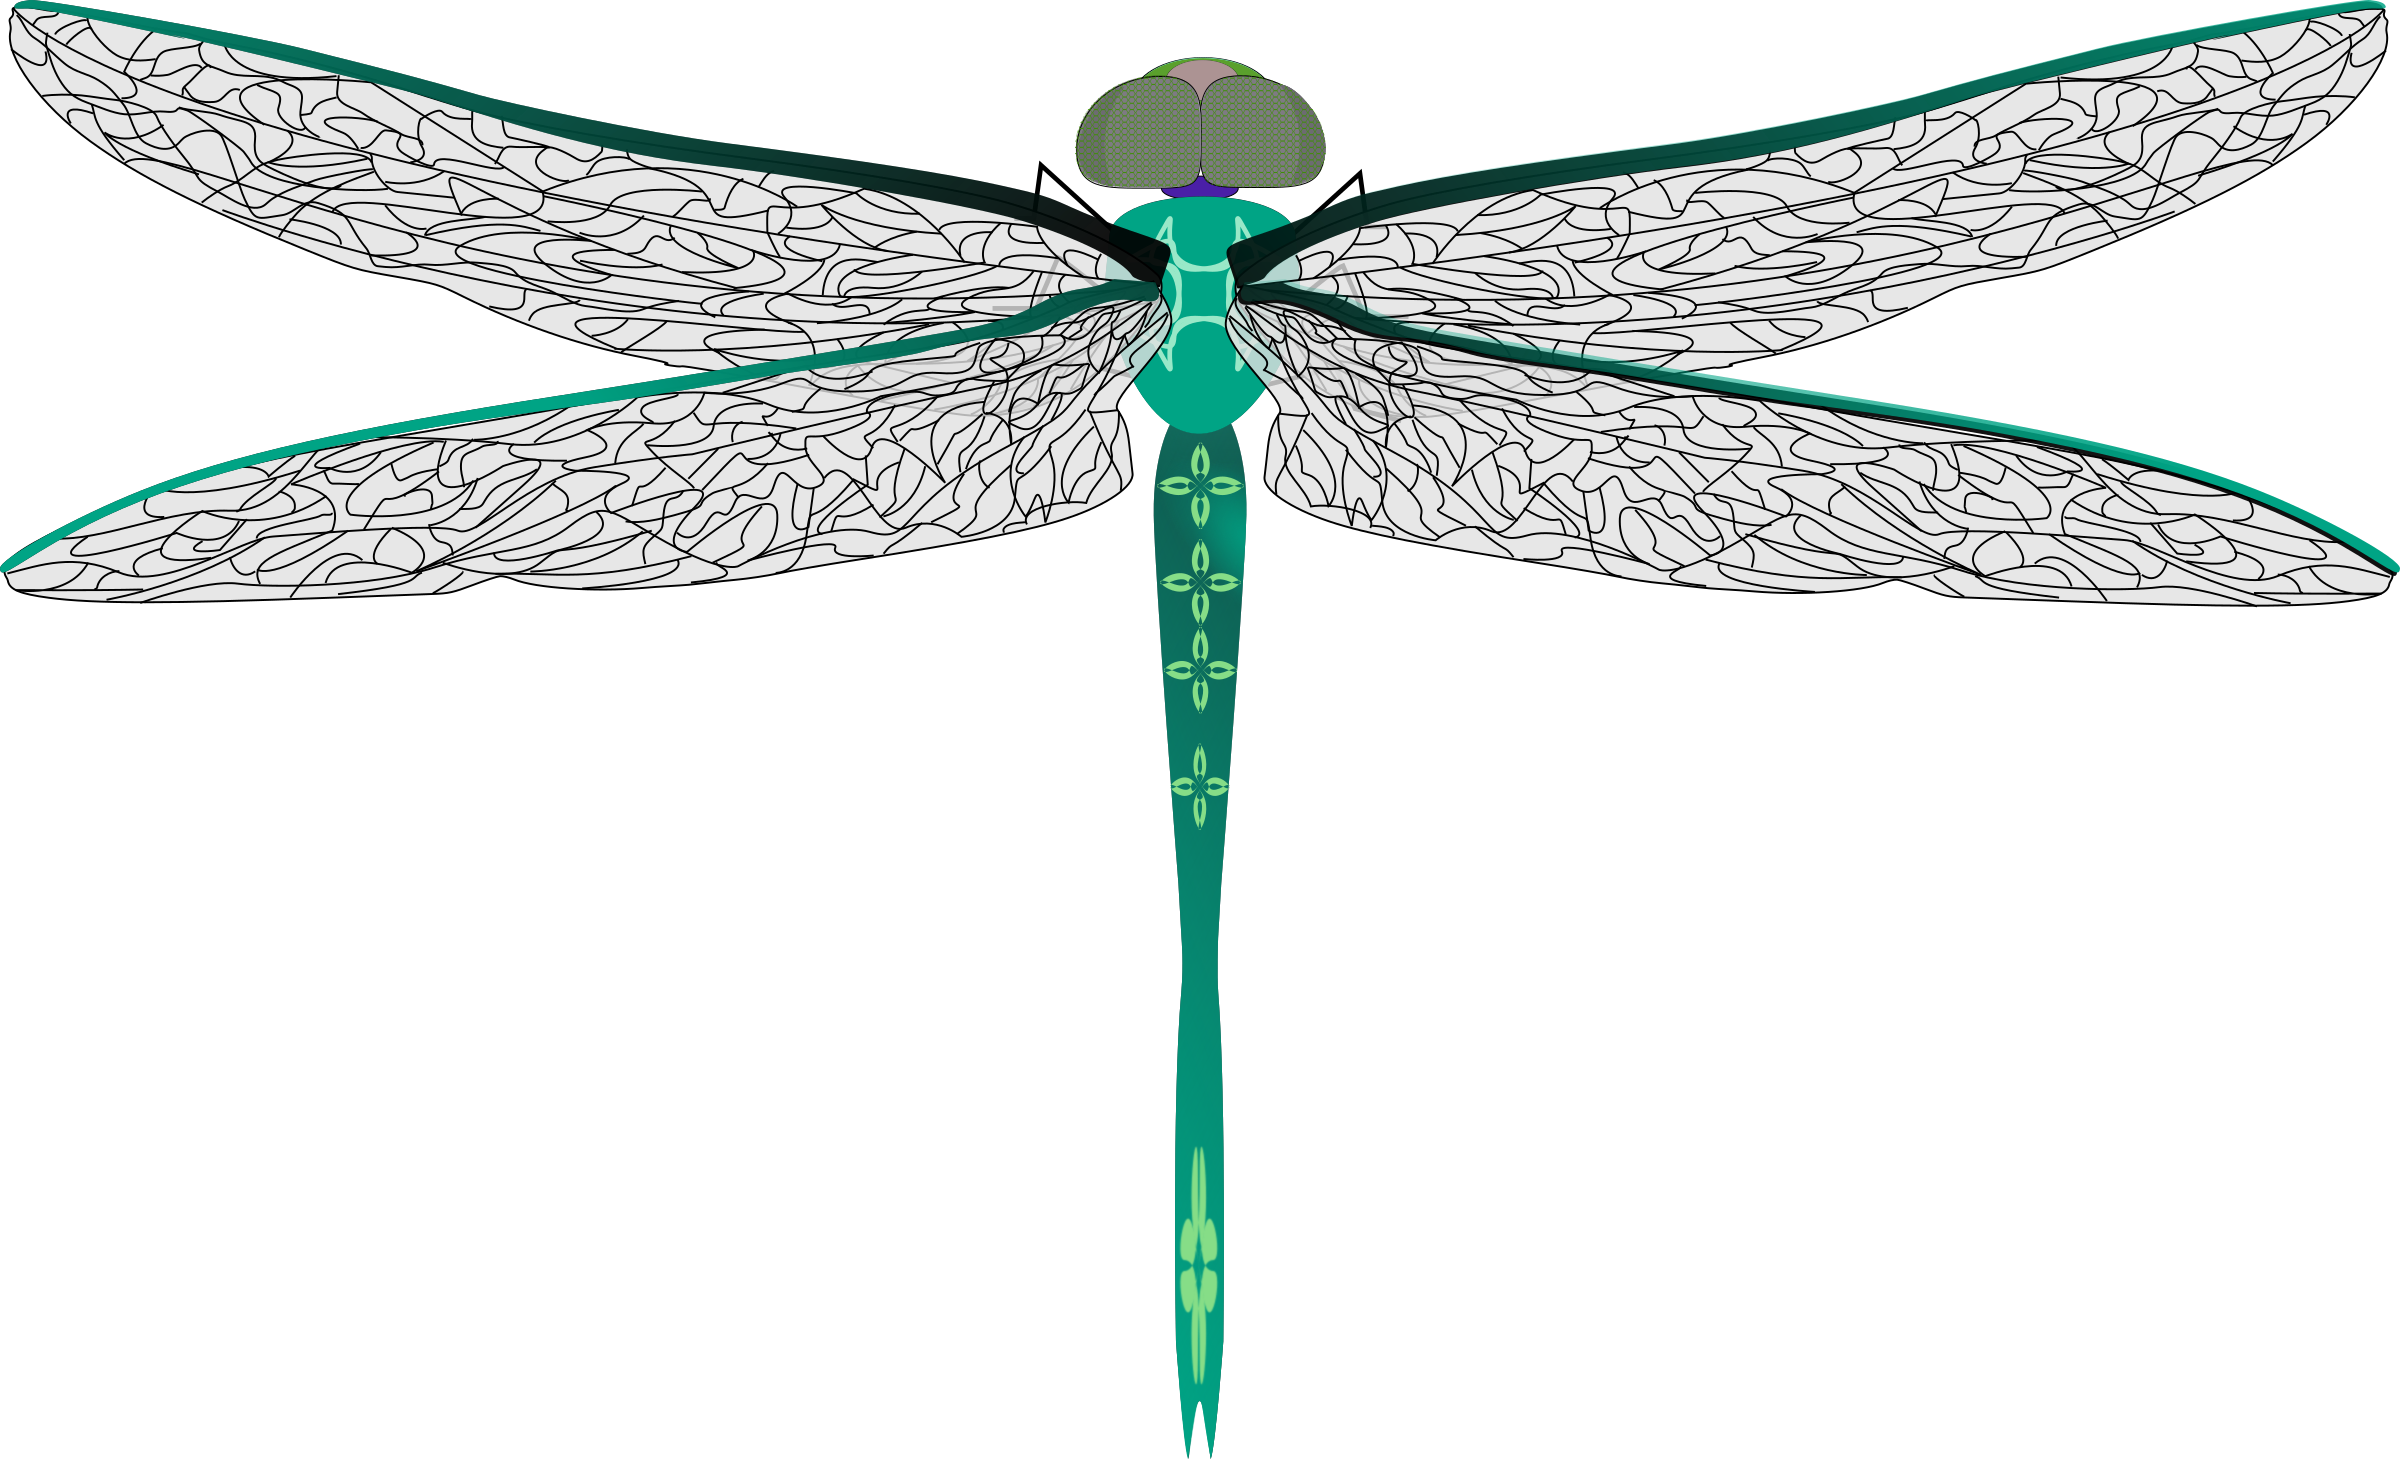 Teal big image png. Dragonfly clipart summer